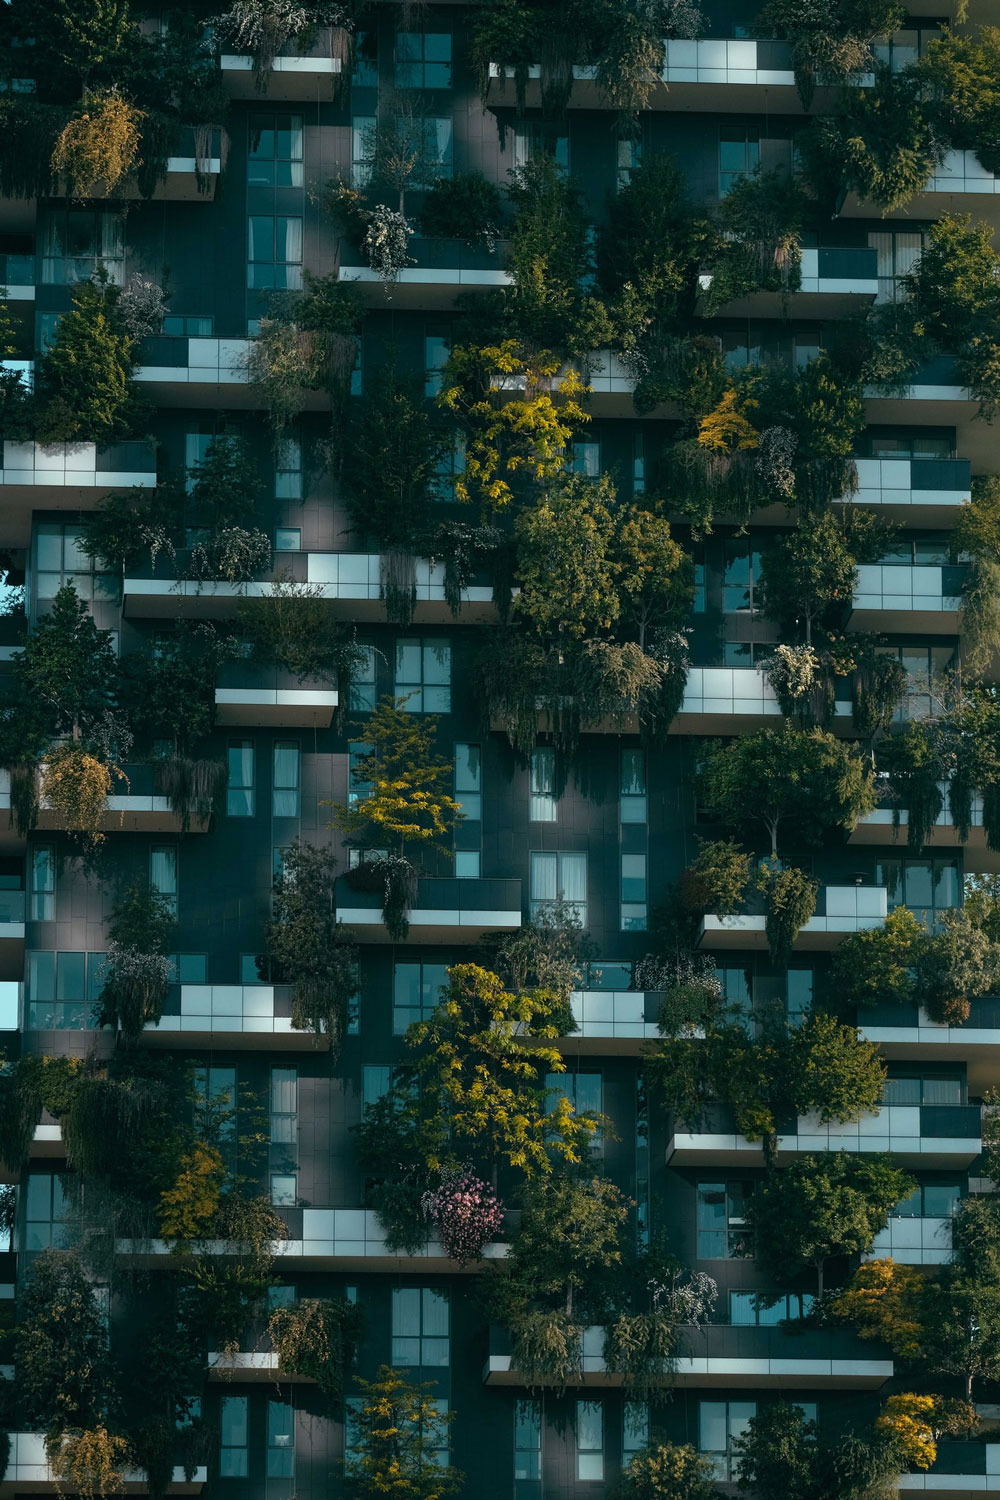 Close Up on Apartment Building